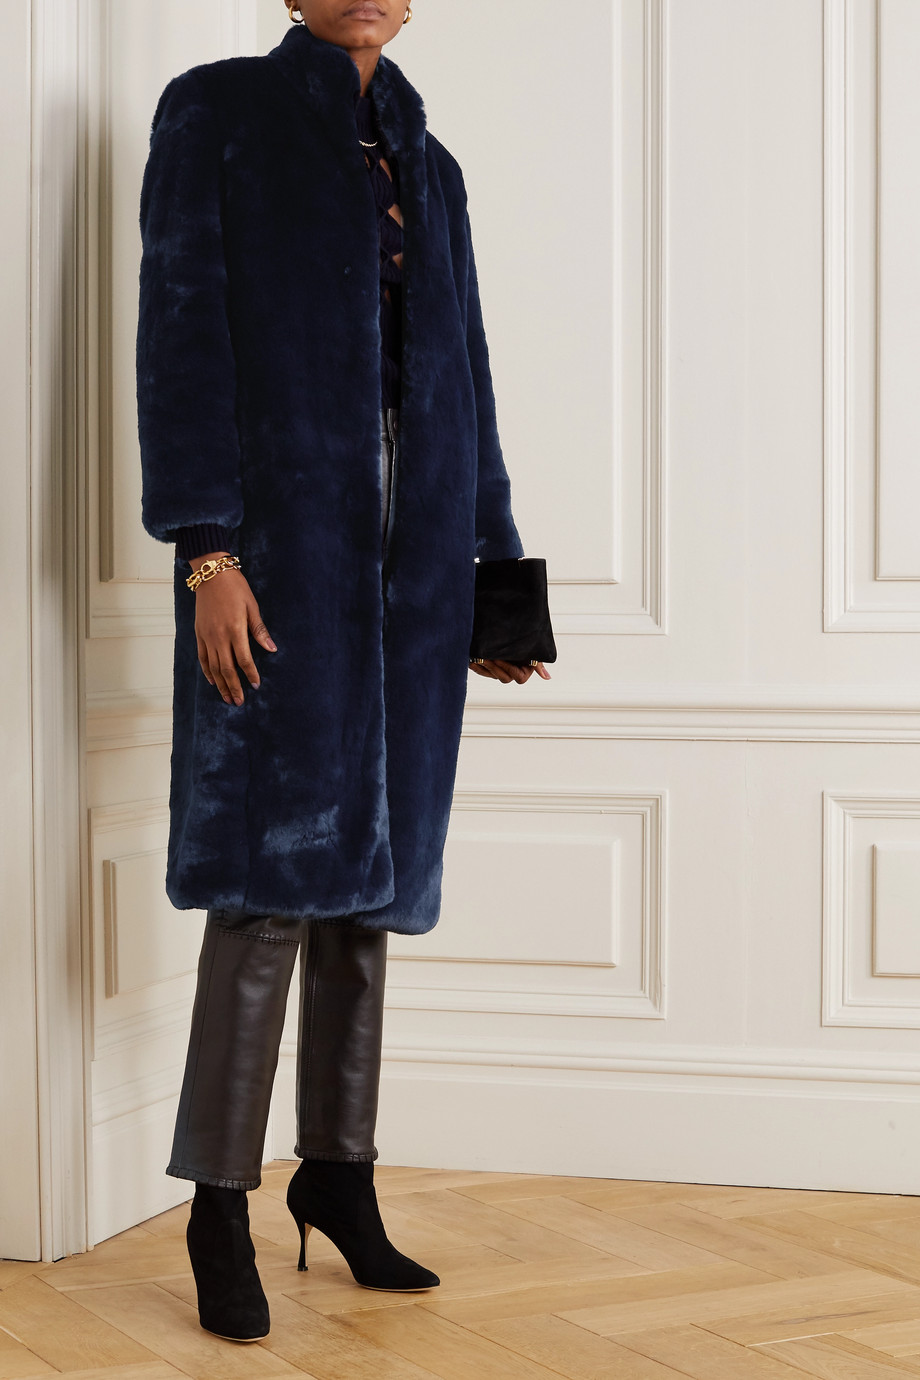 Cefinn Carly faux fur coat